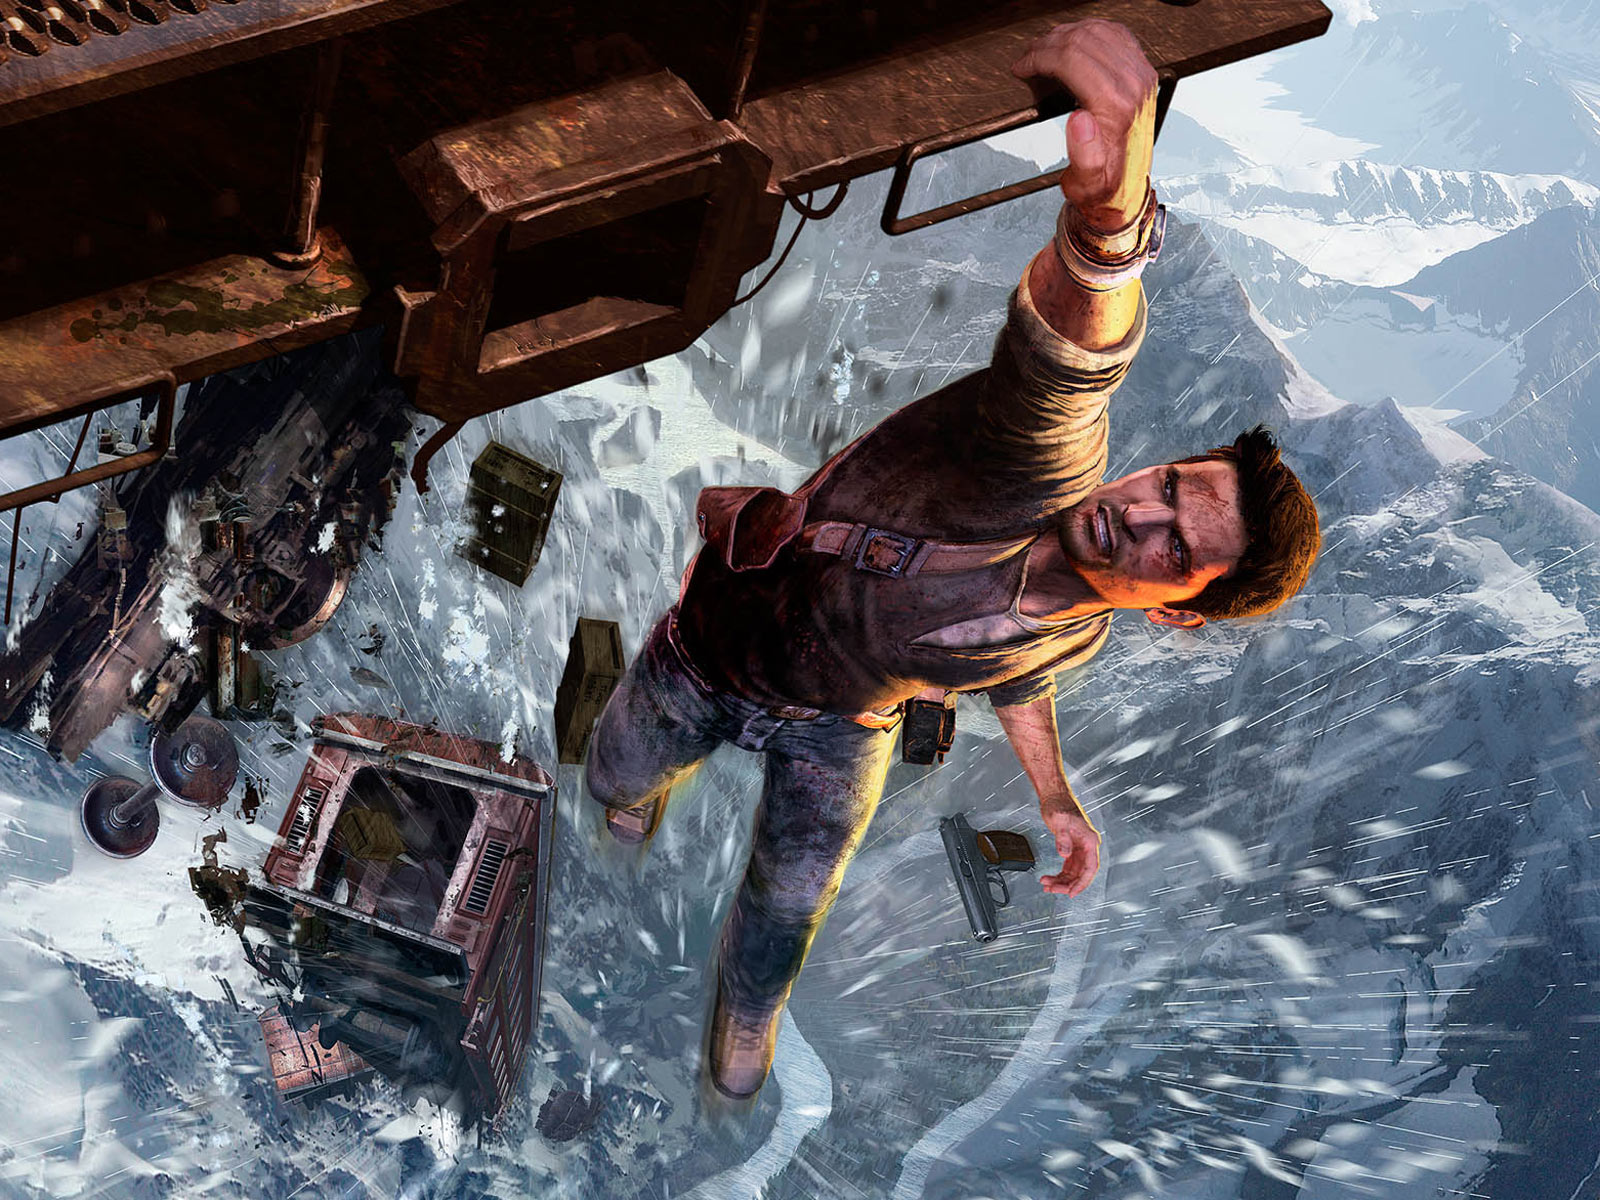 Wallpapers De Jogos Brasil Uncharted 2 Among Thives 1600x1200